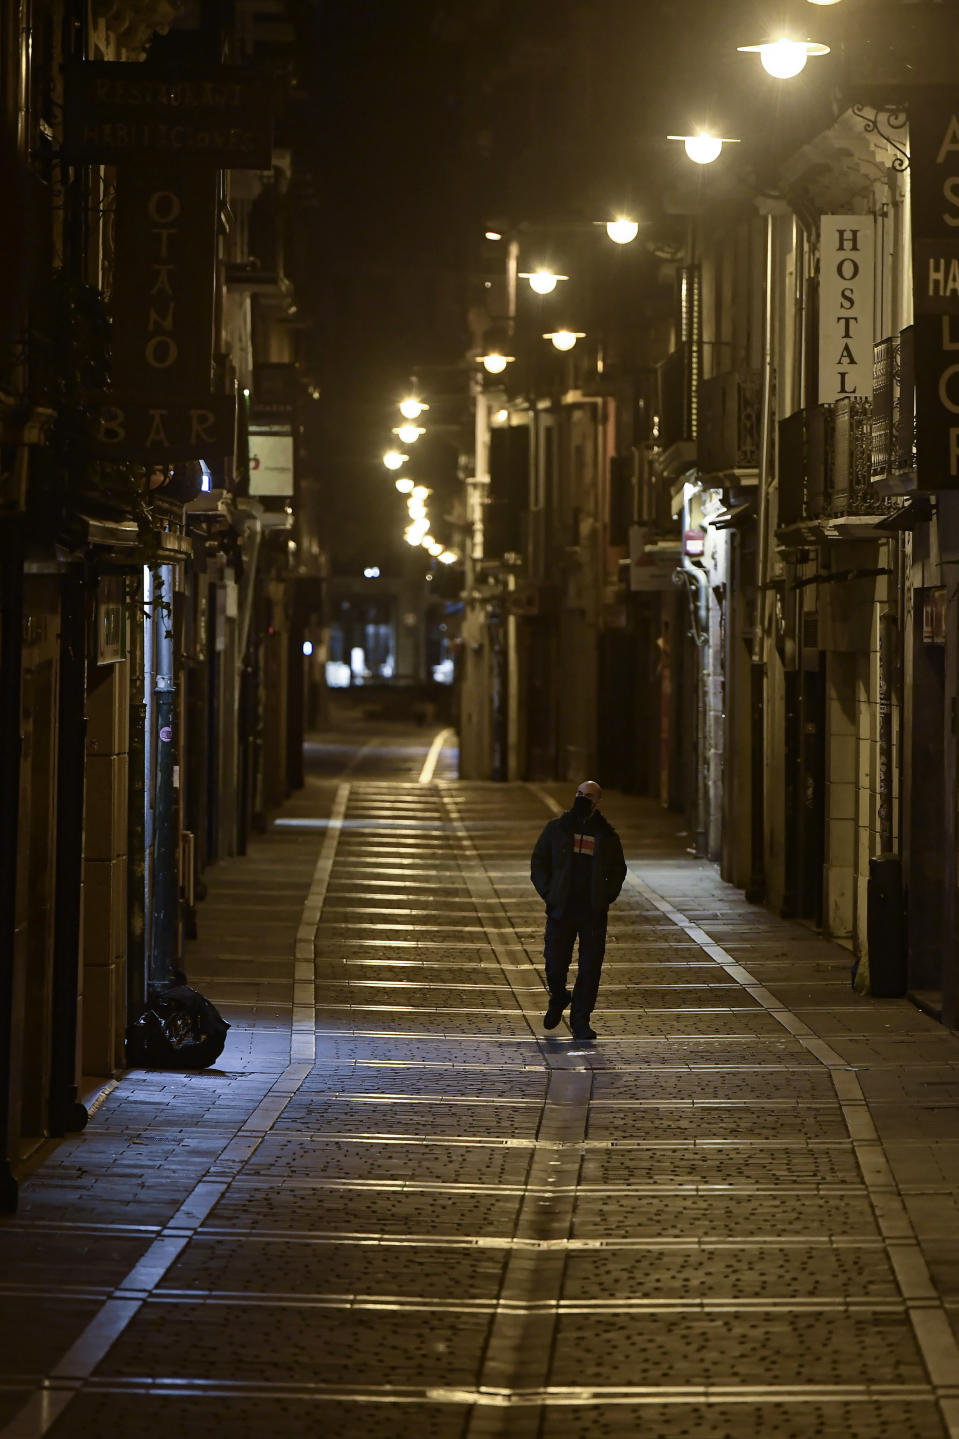 A resident wearing face mask protection walks along an empty San Nicolas street, in Pamplona, northern Spain, Saturday, Oct. 24, 2020, as new measures against the coronavirus began in the Navarra province where all bar and restaurants are closed for 15 days from midnight Wednesday. (AP Photo/Alvaro Barrientos)